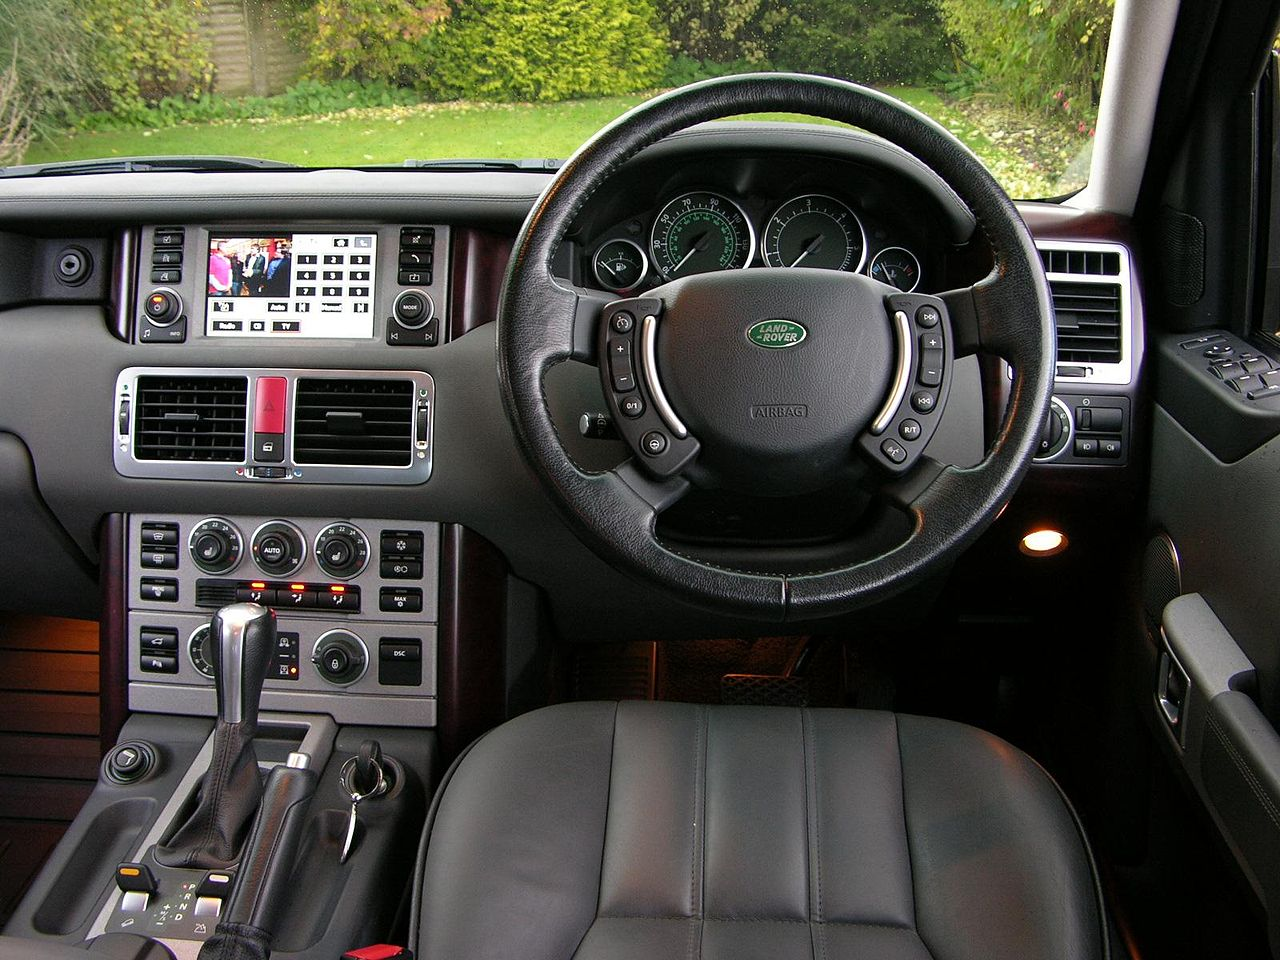 file 2006 range rover td6 vogue flickr the car spy 12 jpg rh commons  wikimedia org Range Rover Relay Wiring Diagram Rover Country Range Classic  Wiring- ...